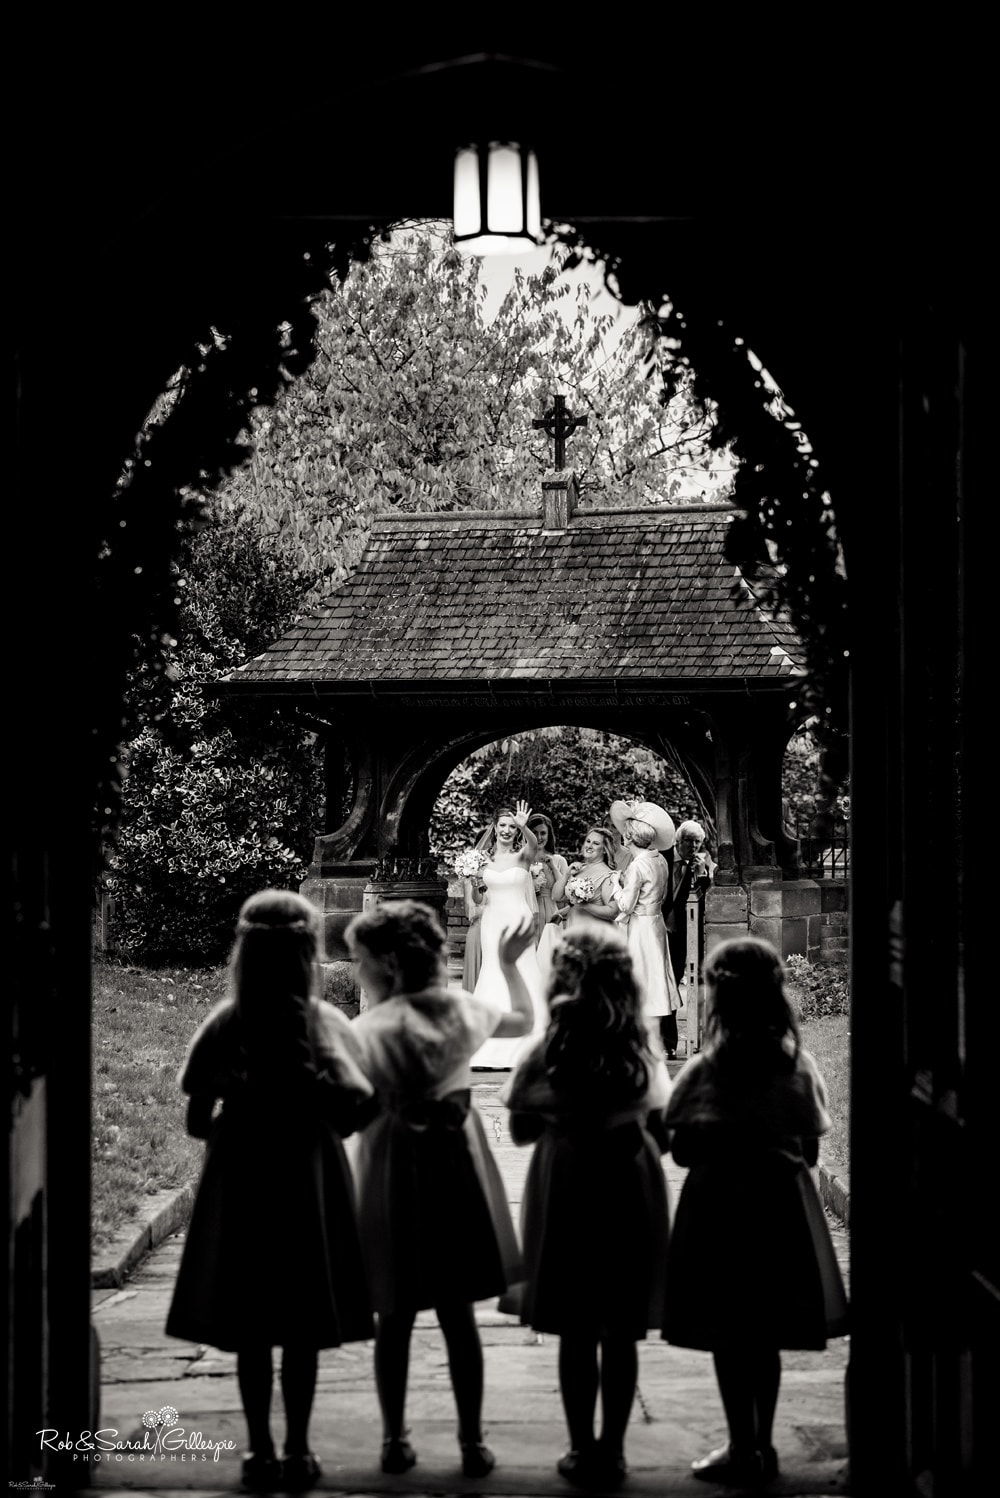 Bride waves to flowergirls as she arrives at wedding